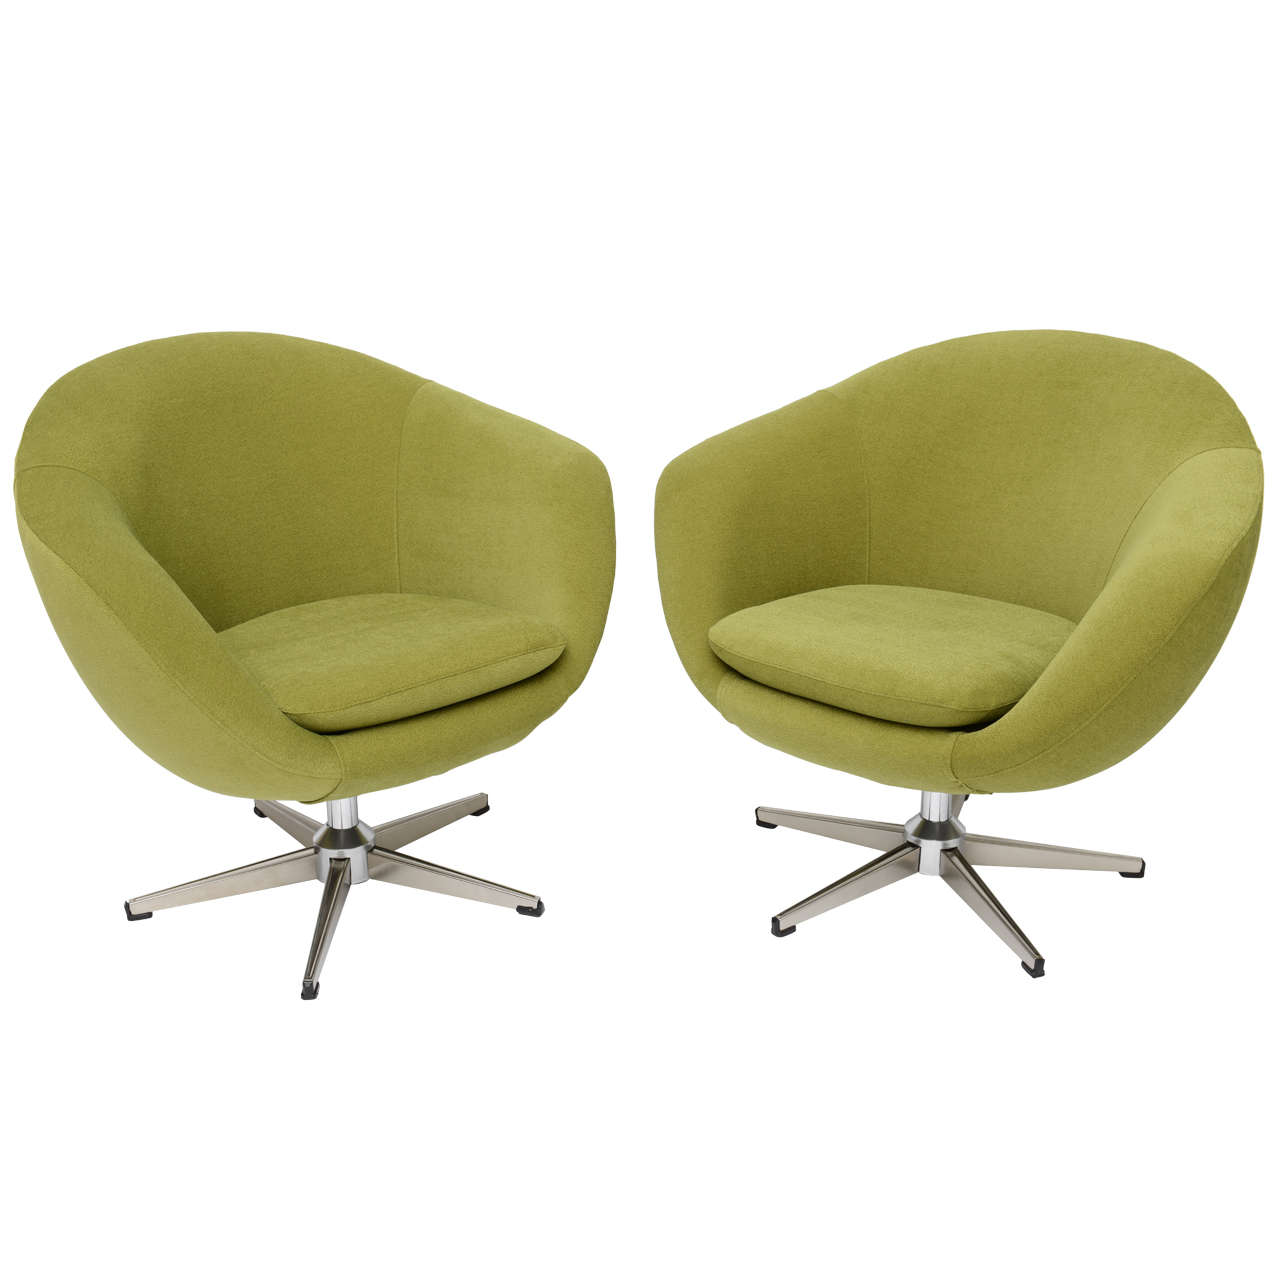 swivel chair egg ikea faux leather classic swedish overman chairs at 1stdibs